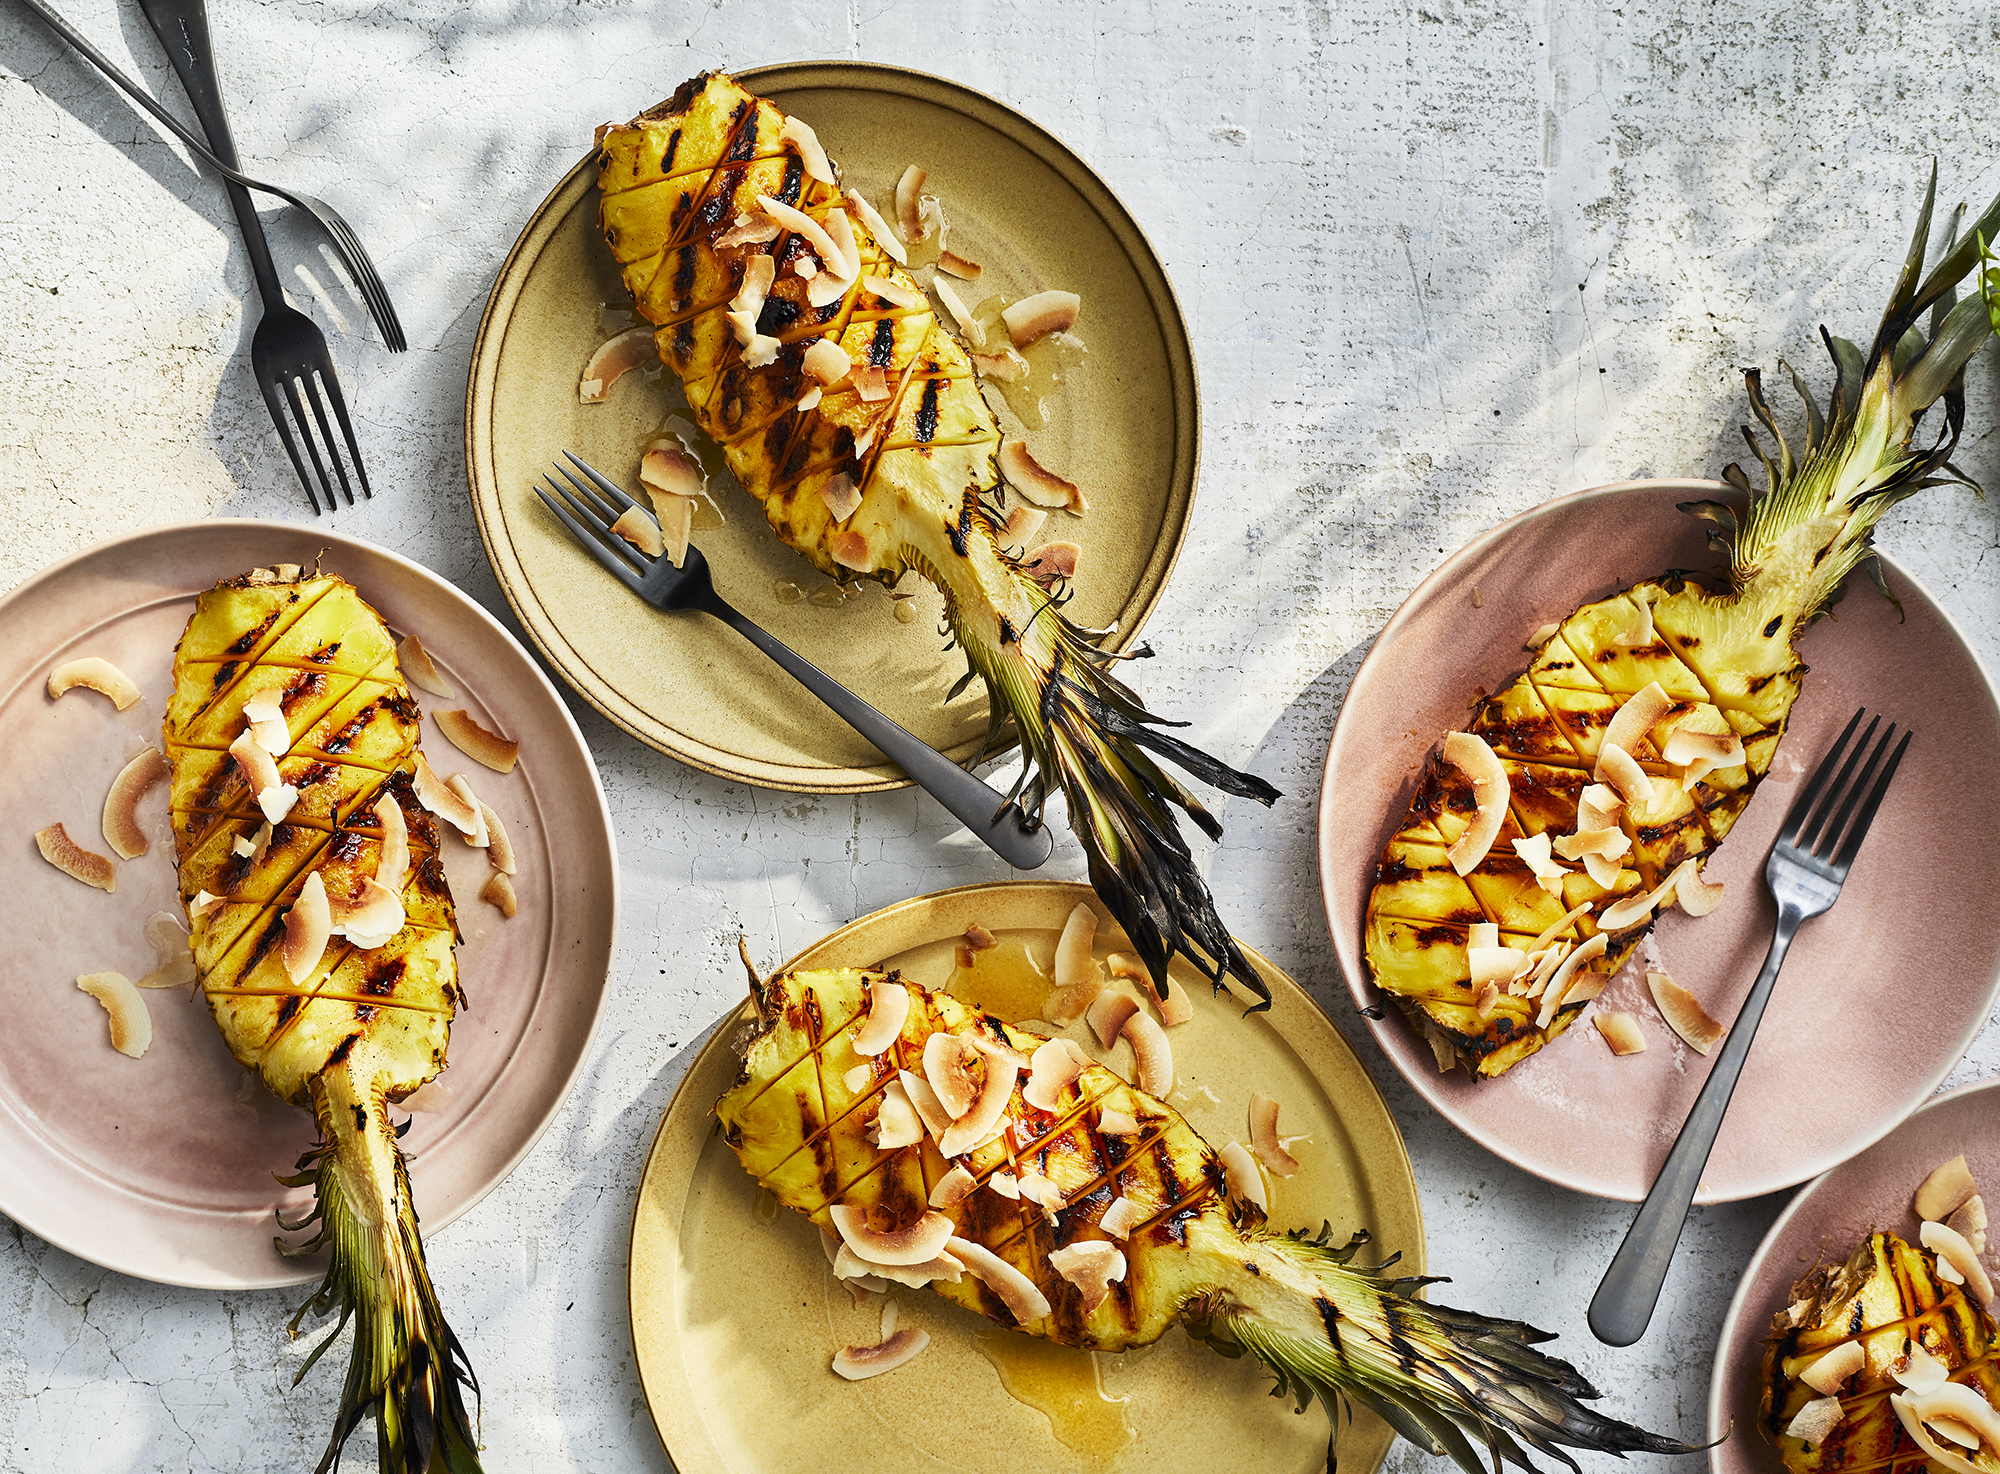 pineapple-grilled-recipes-health-mag-june-2020